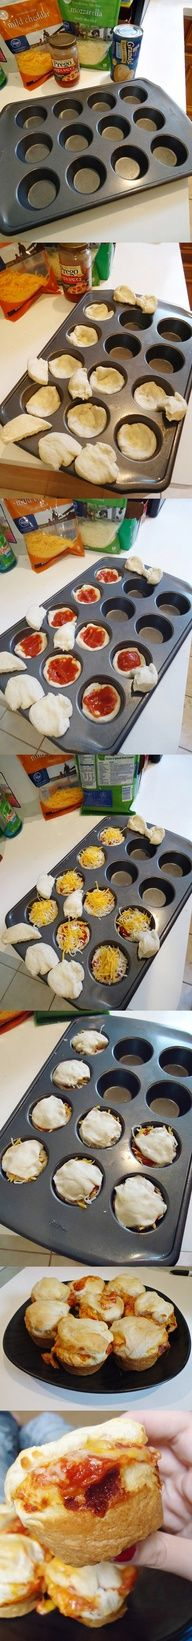 "Pizza Cupcakes"" data-componentType=""MODAL_PIN"